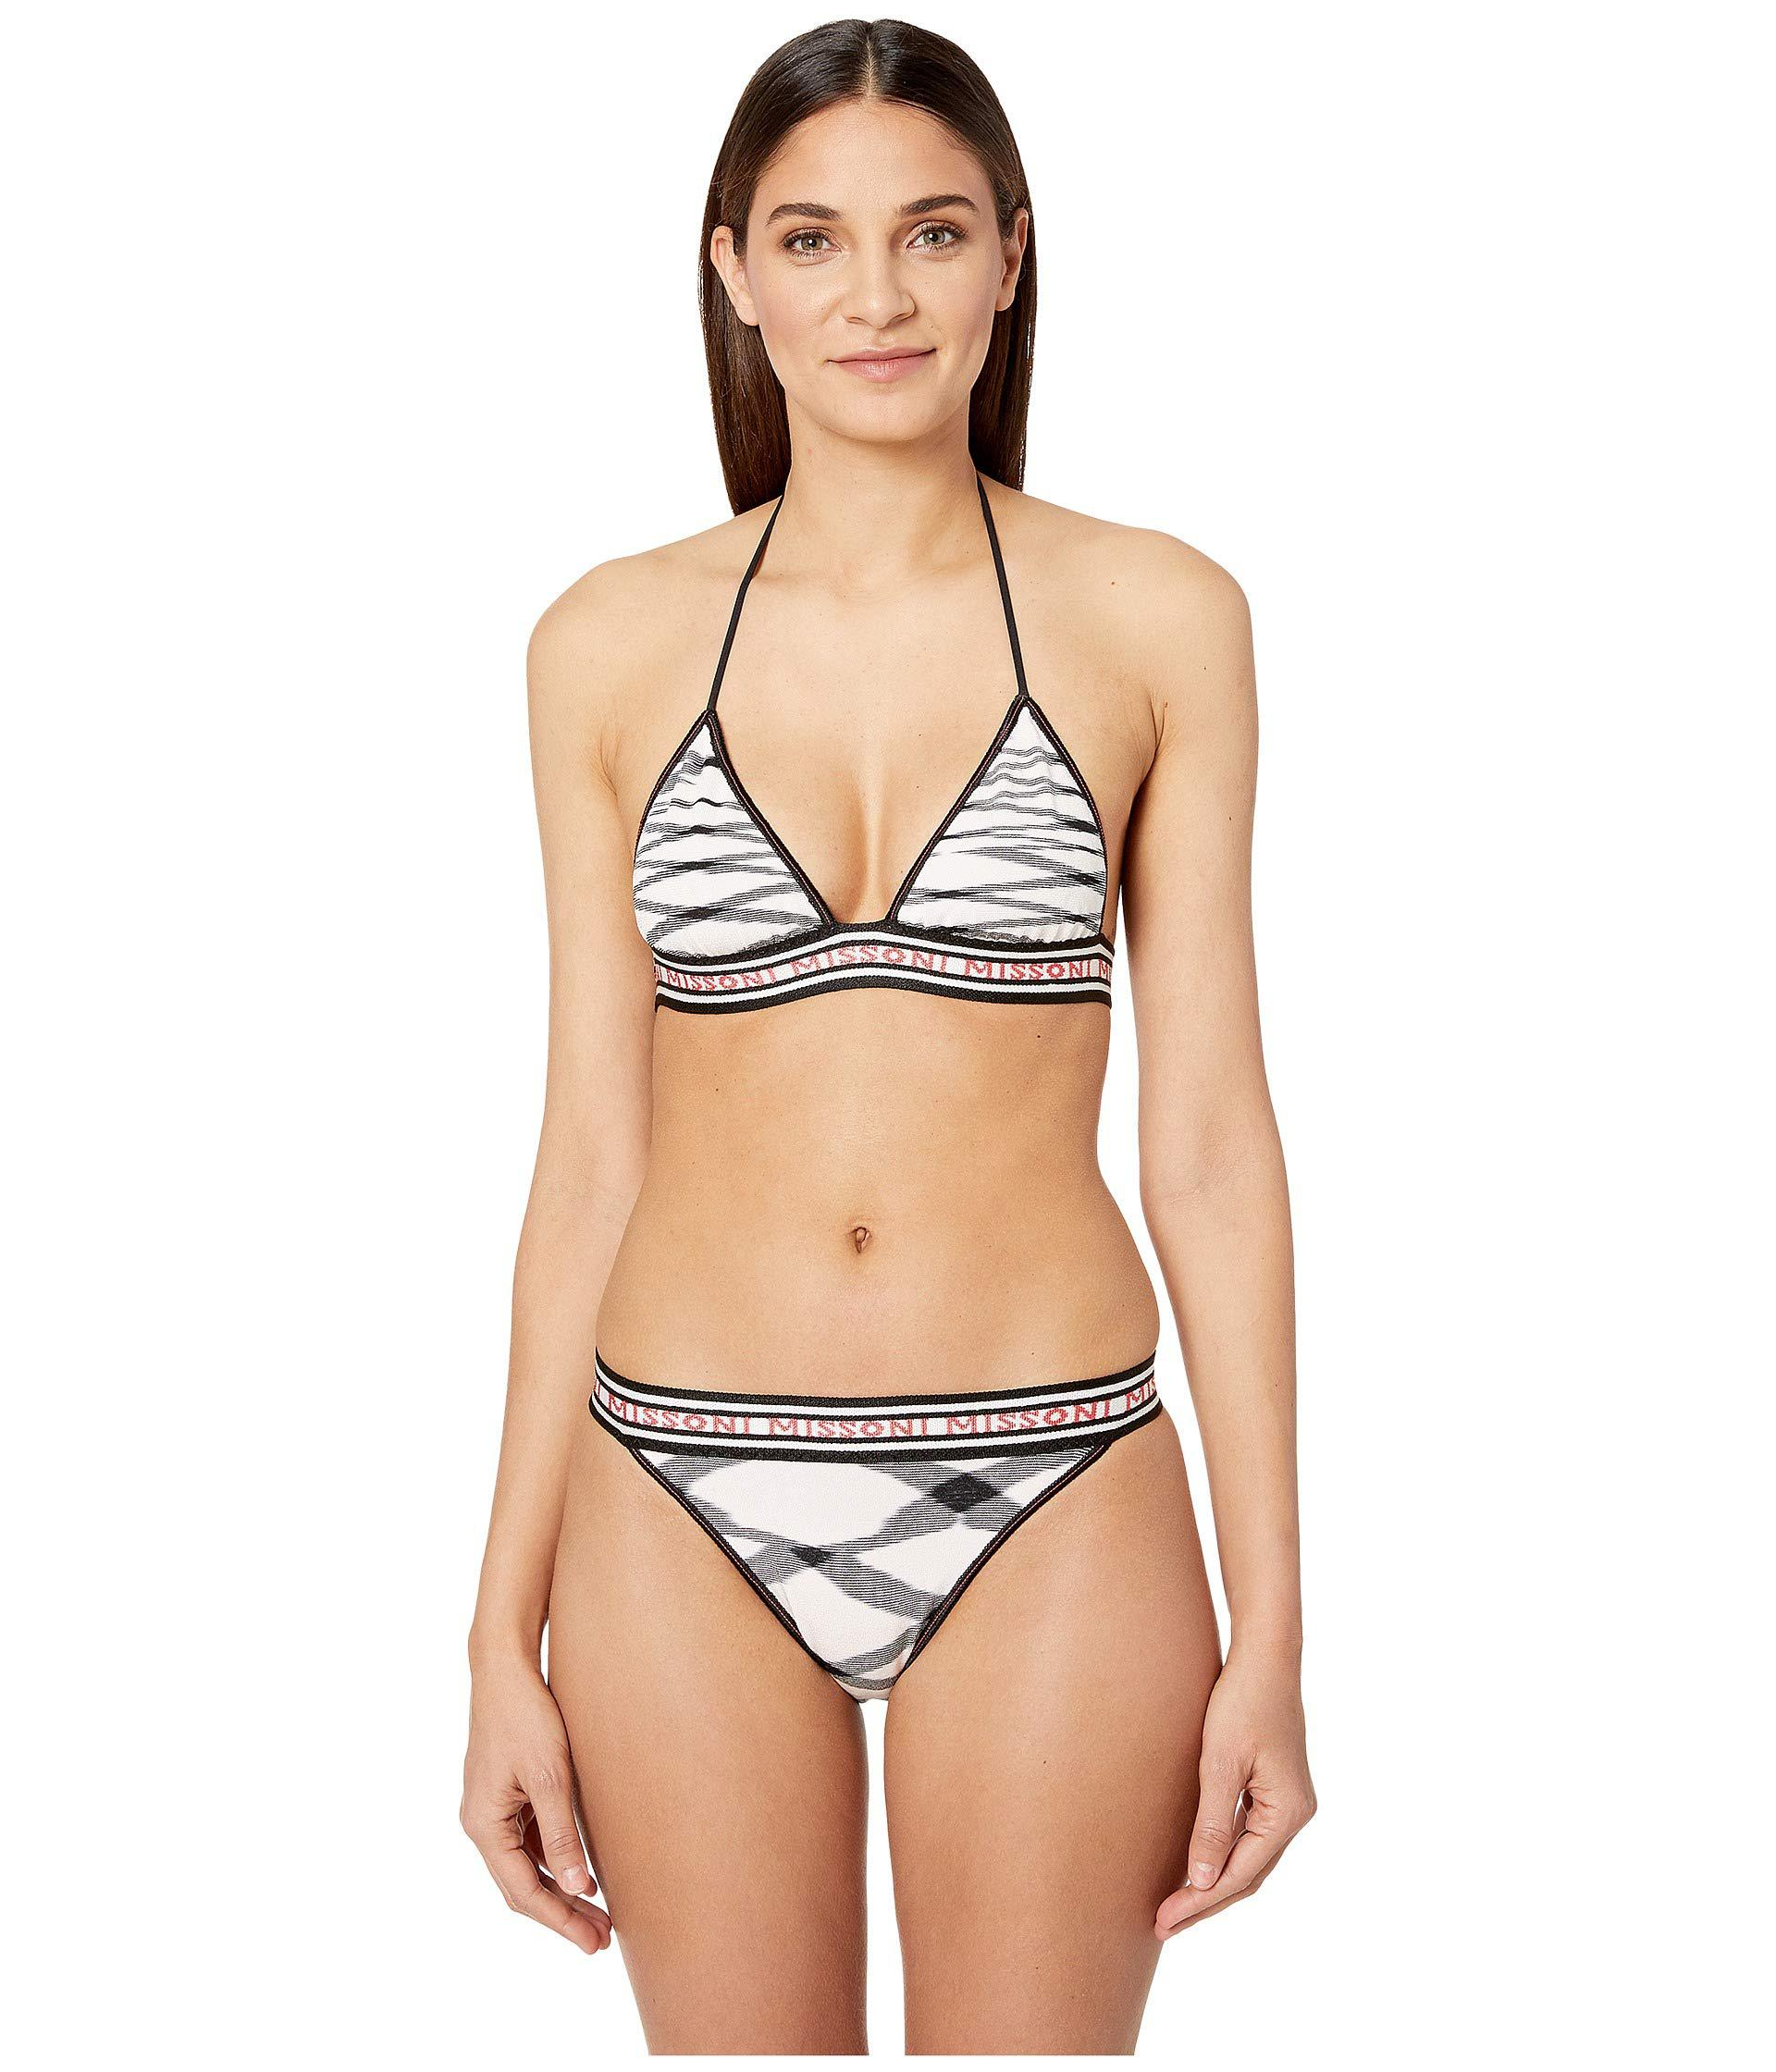 5f3102952665b Lyst - Missoni Fiammata Bikini (black pink) Women s Swimwear Sets in ...